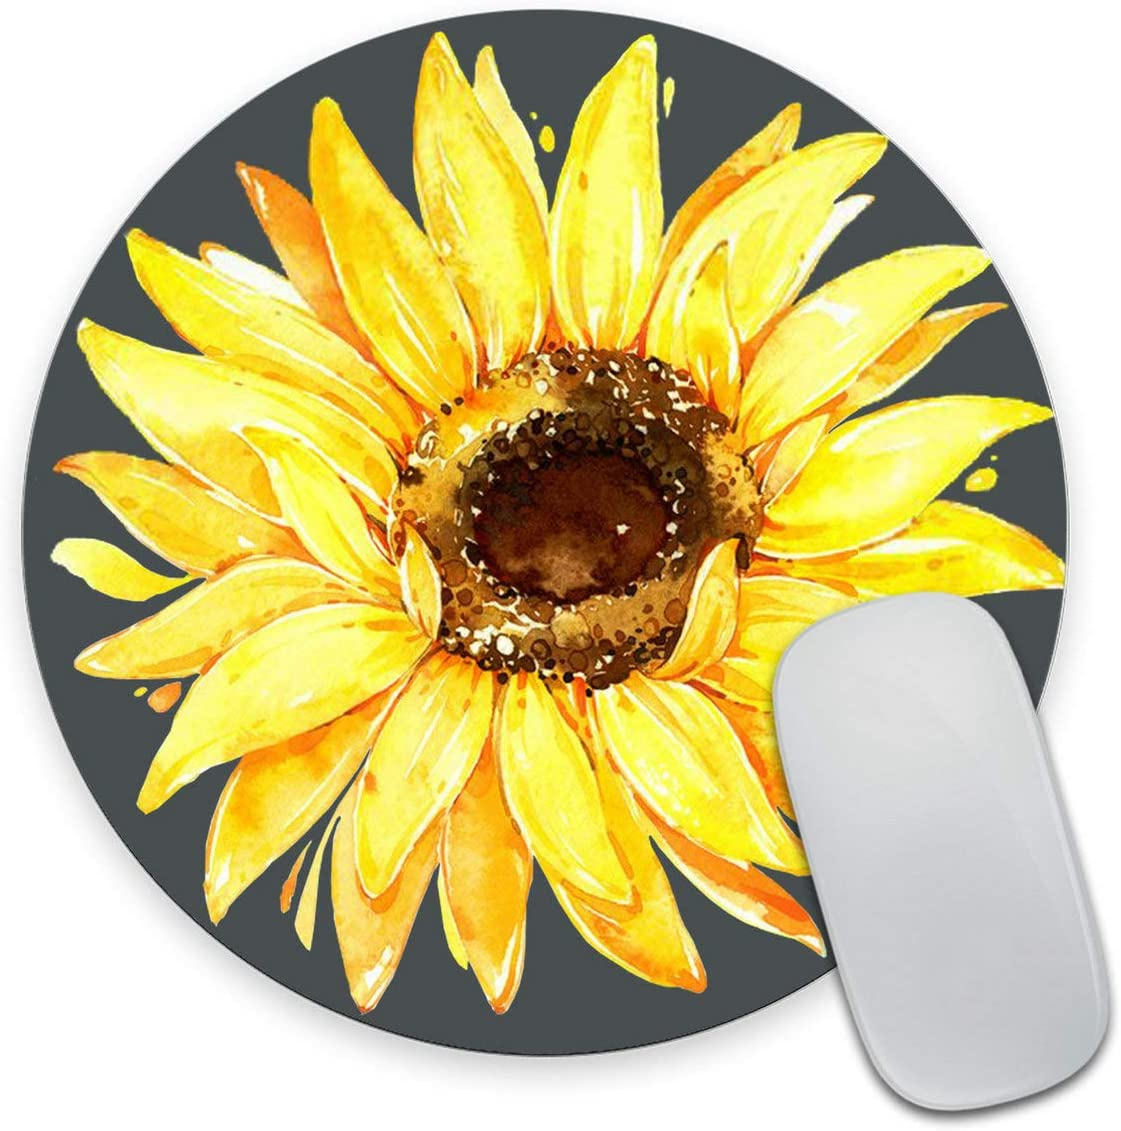 Smooffly Sunflower Mouse pad Mousepad Watercolor Floral Desk Decor Mouse Pads Round Mouse pad Sunflower